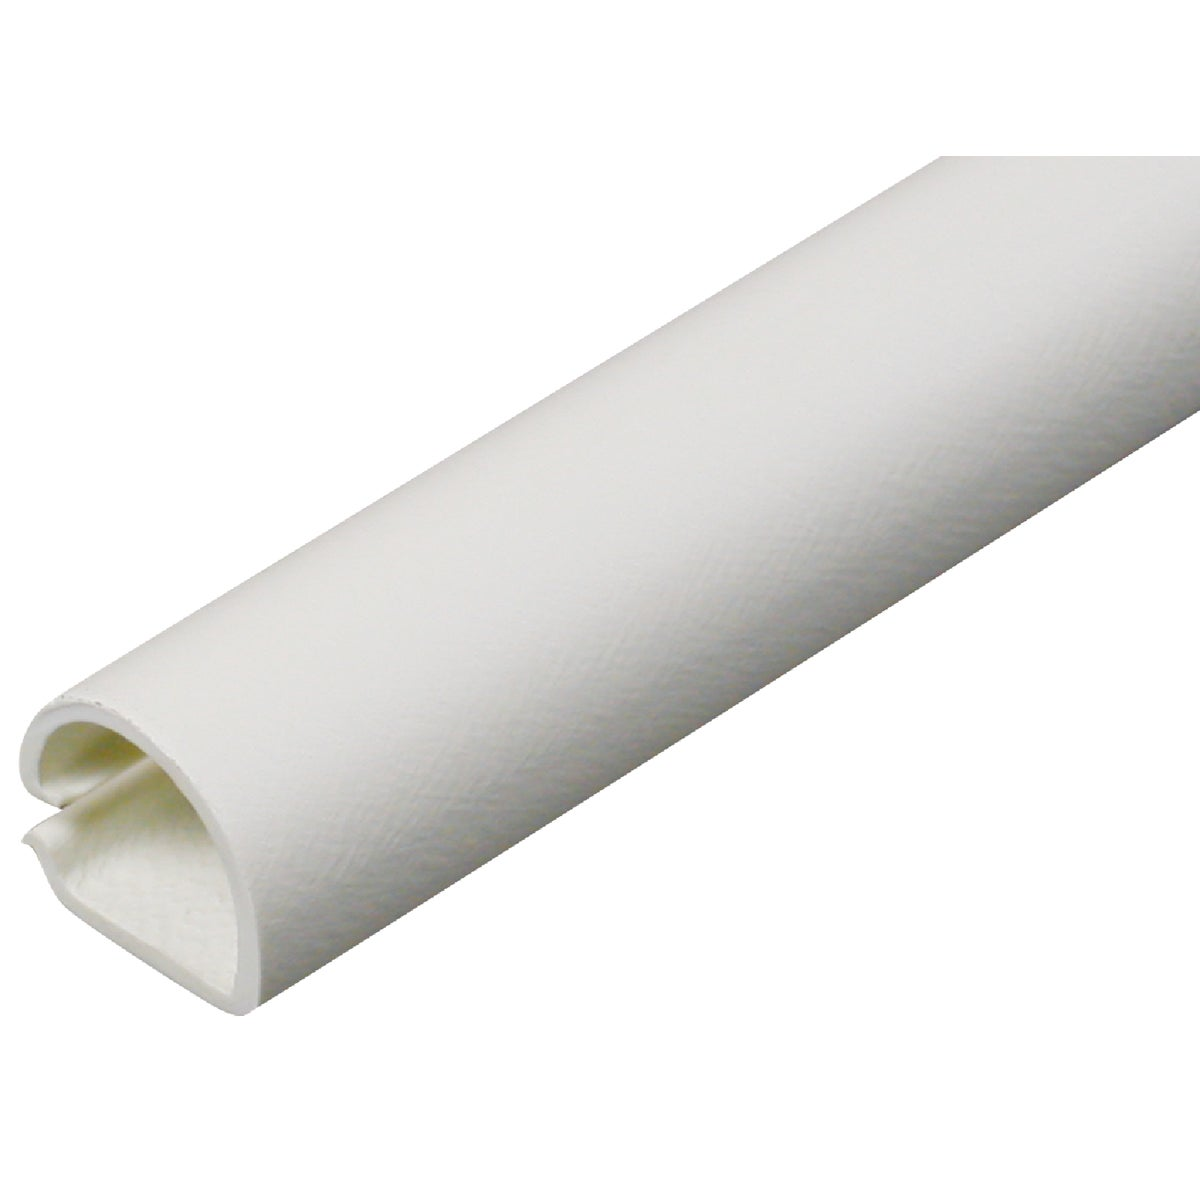 5' WHT CORD CHANNEL - C10 by Wiremold / Legrand